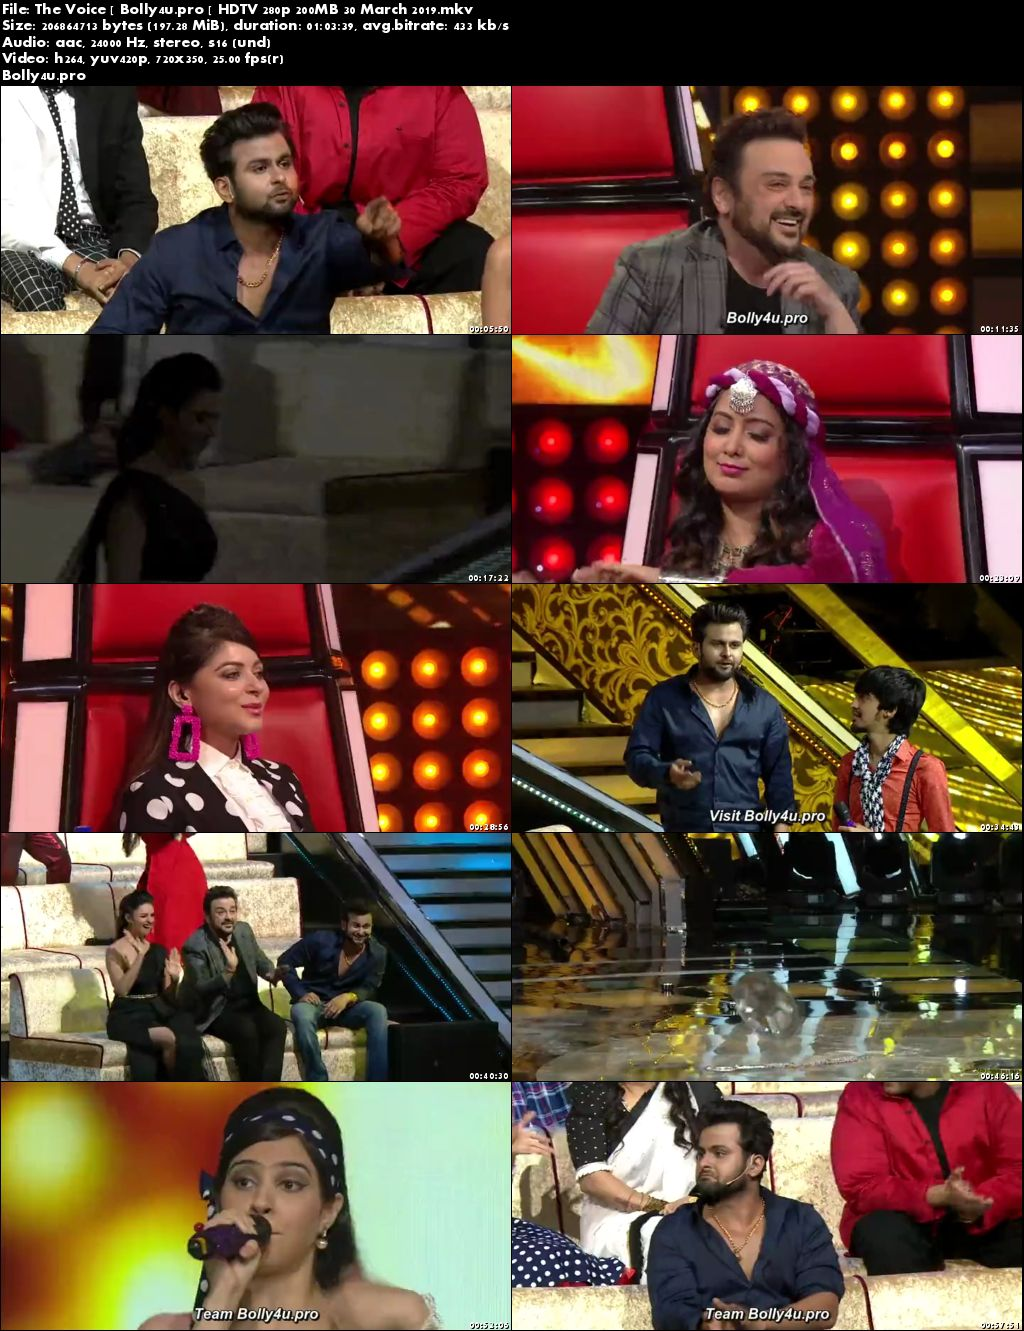 The Voice HDTV 280p 200MB 30 March 2019 Download